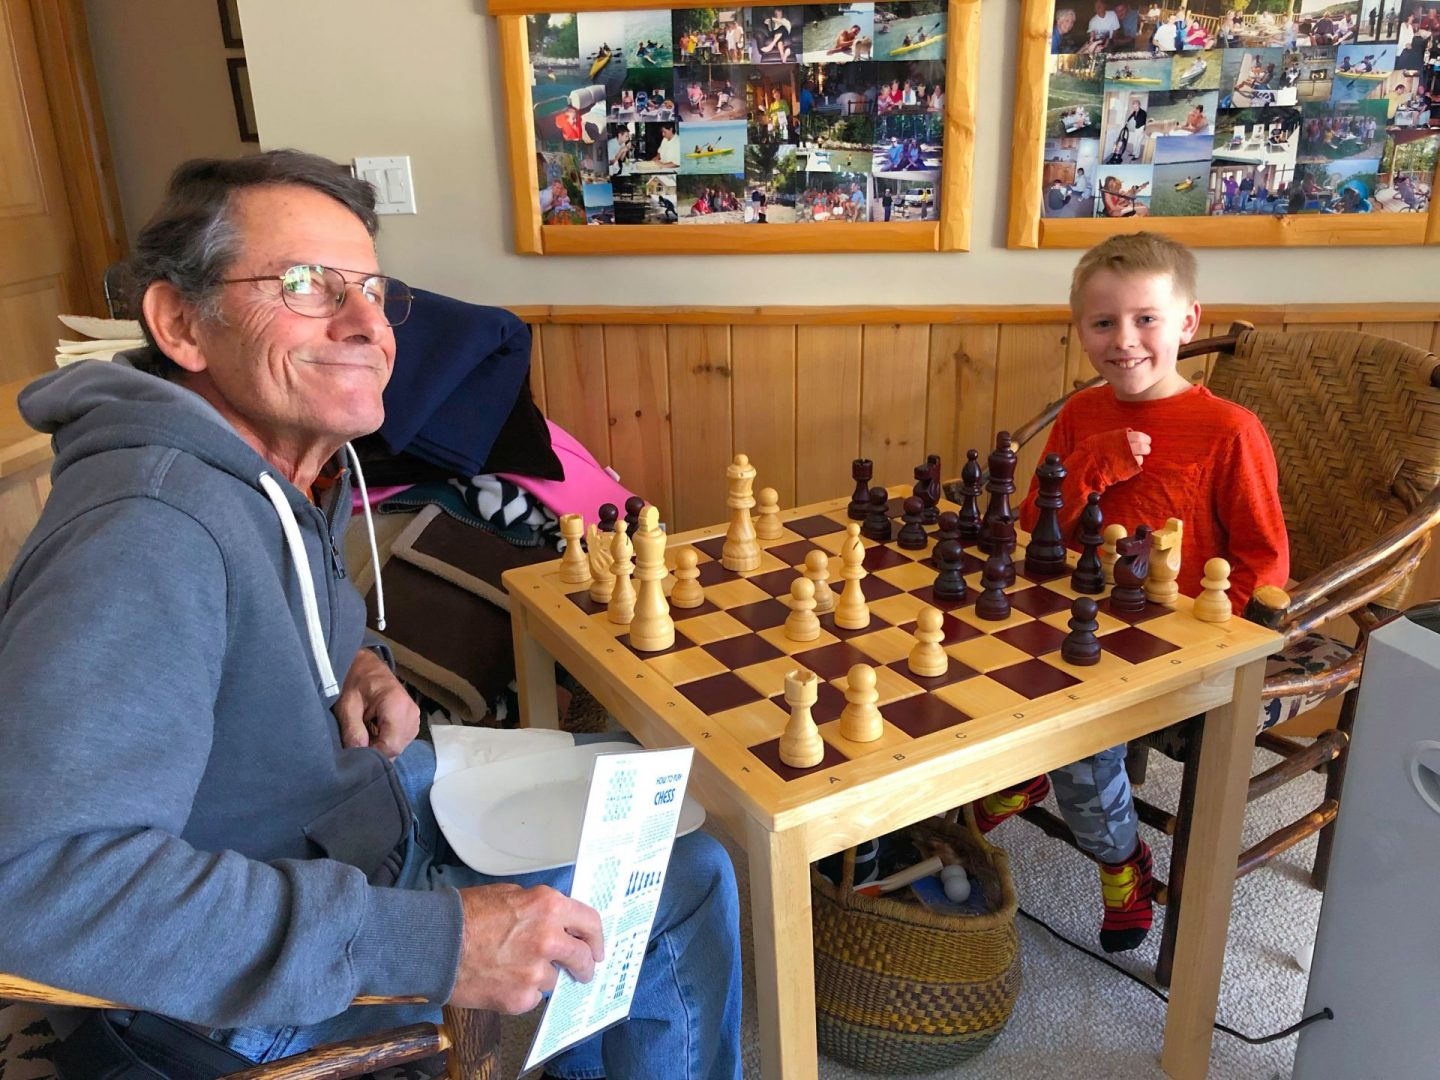 Chess as an alternative to video games